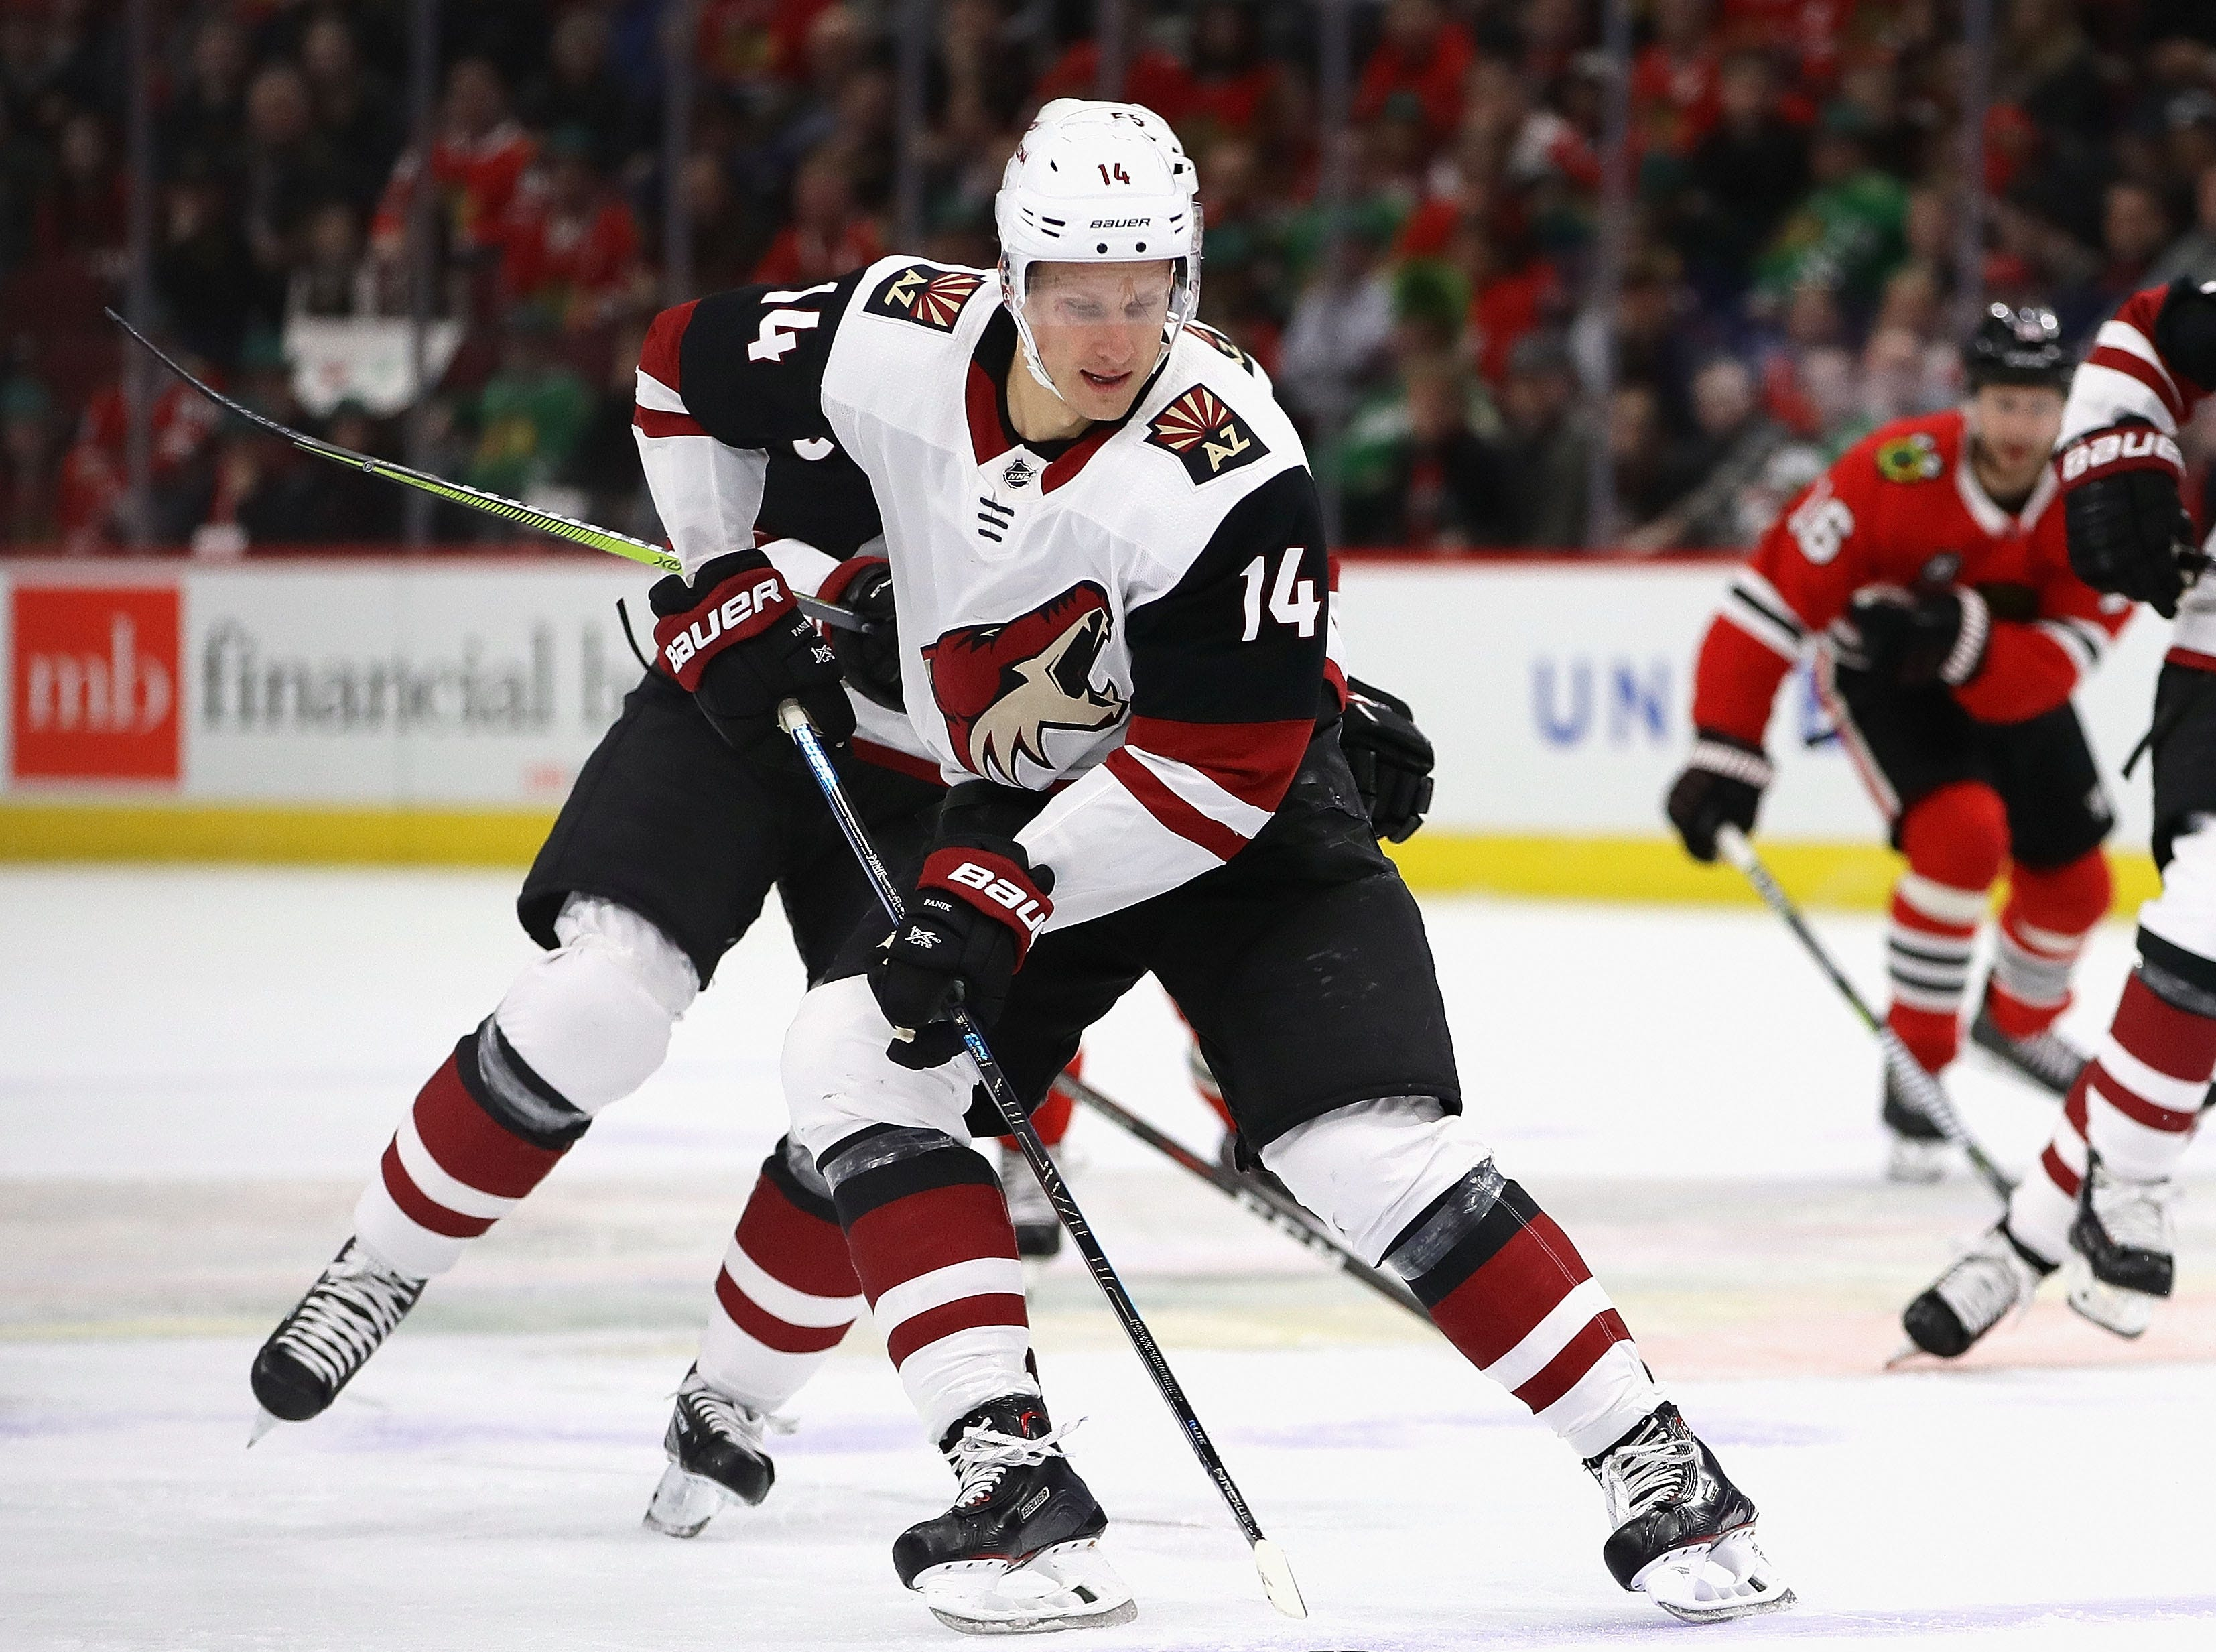 Richard Panik scored a goal in the first period of a game against the Blackhawks on March 11 at United Center.